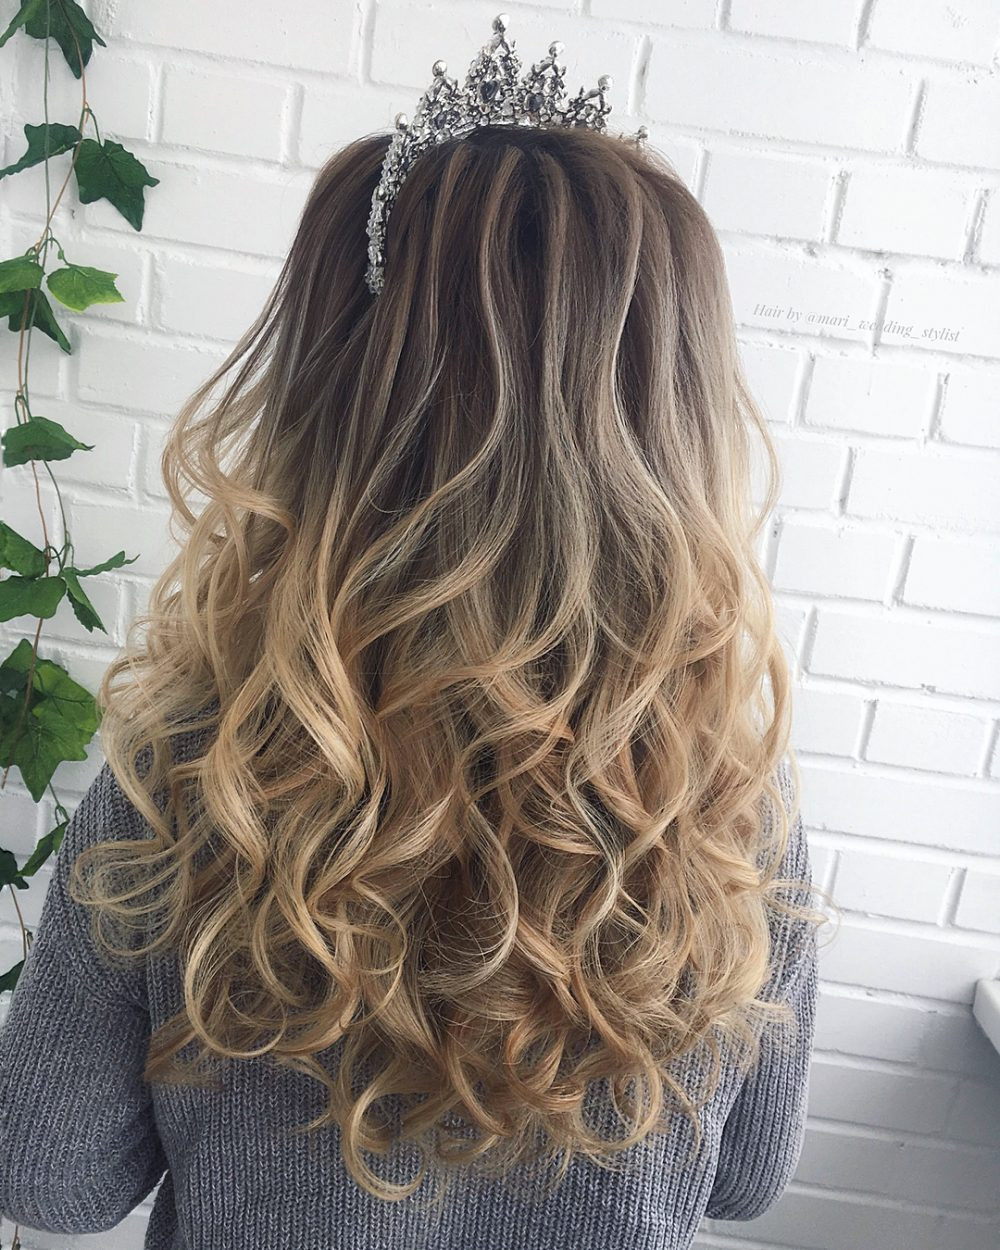 Best ideas about Prom Hairstyles Curly Down . Save or Pin 22 Perfectly Gorgeous Down Hairstyles for Prom Now.